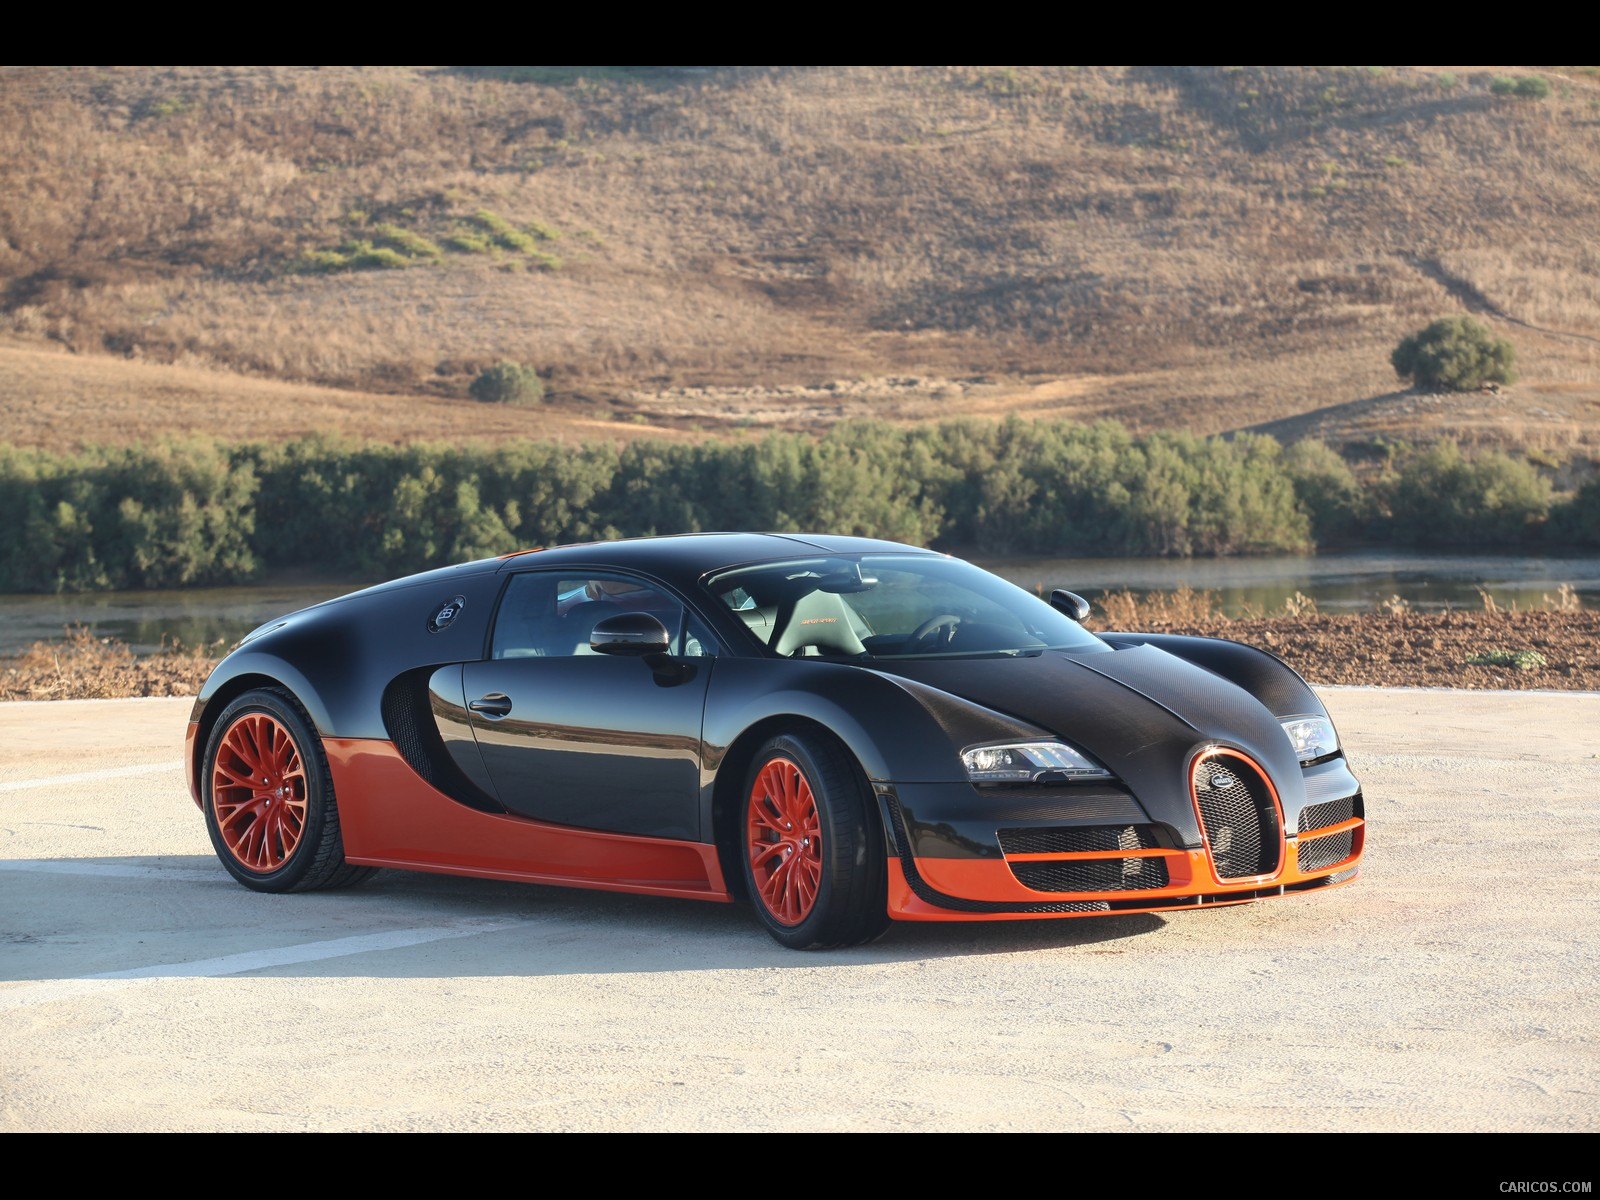 2013 bugatti veyron exotic cars photo 25063380 fanpop 2016 2017 best cars review. Black Bedroom Furniture Sets. Home Design Ideas